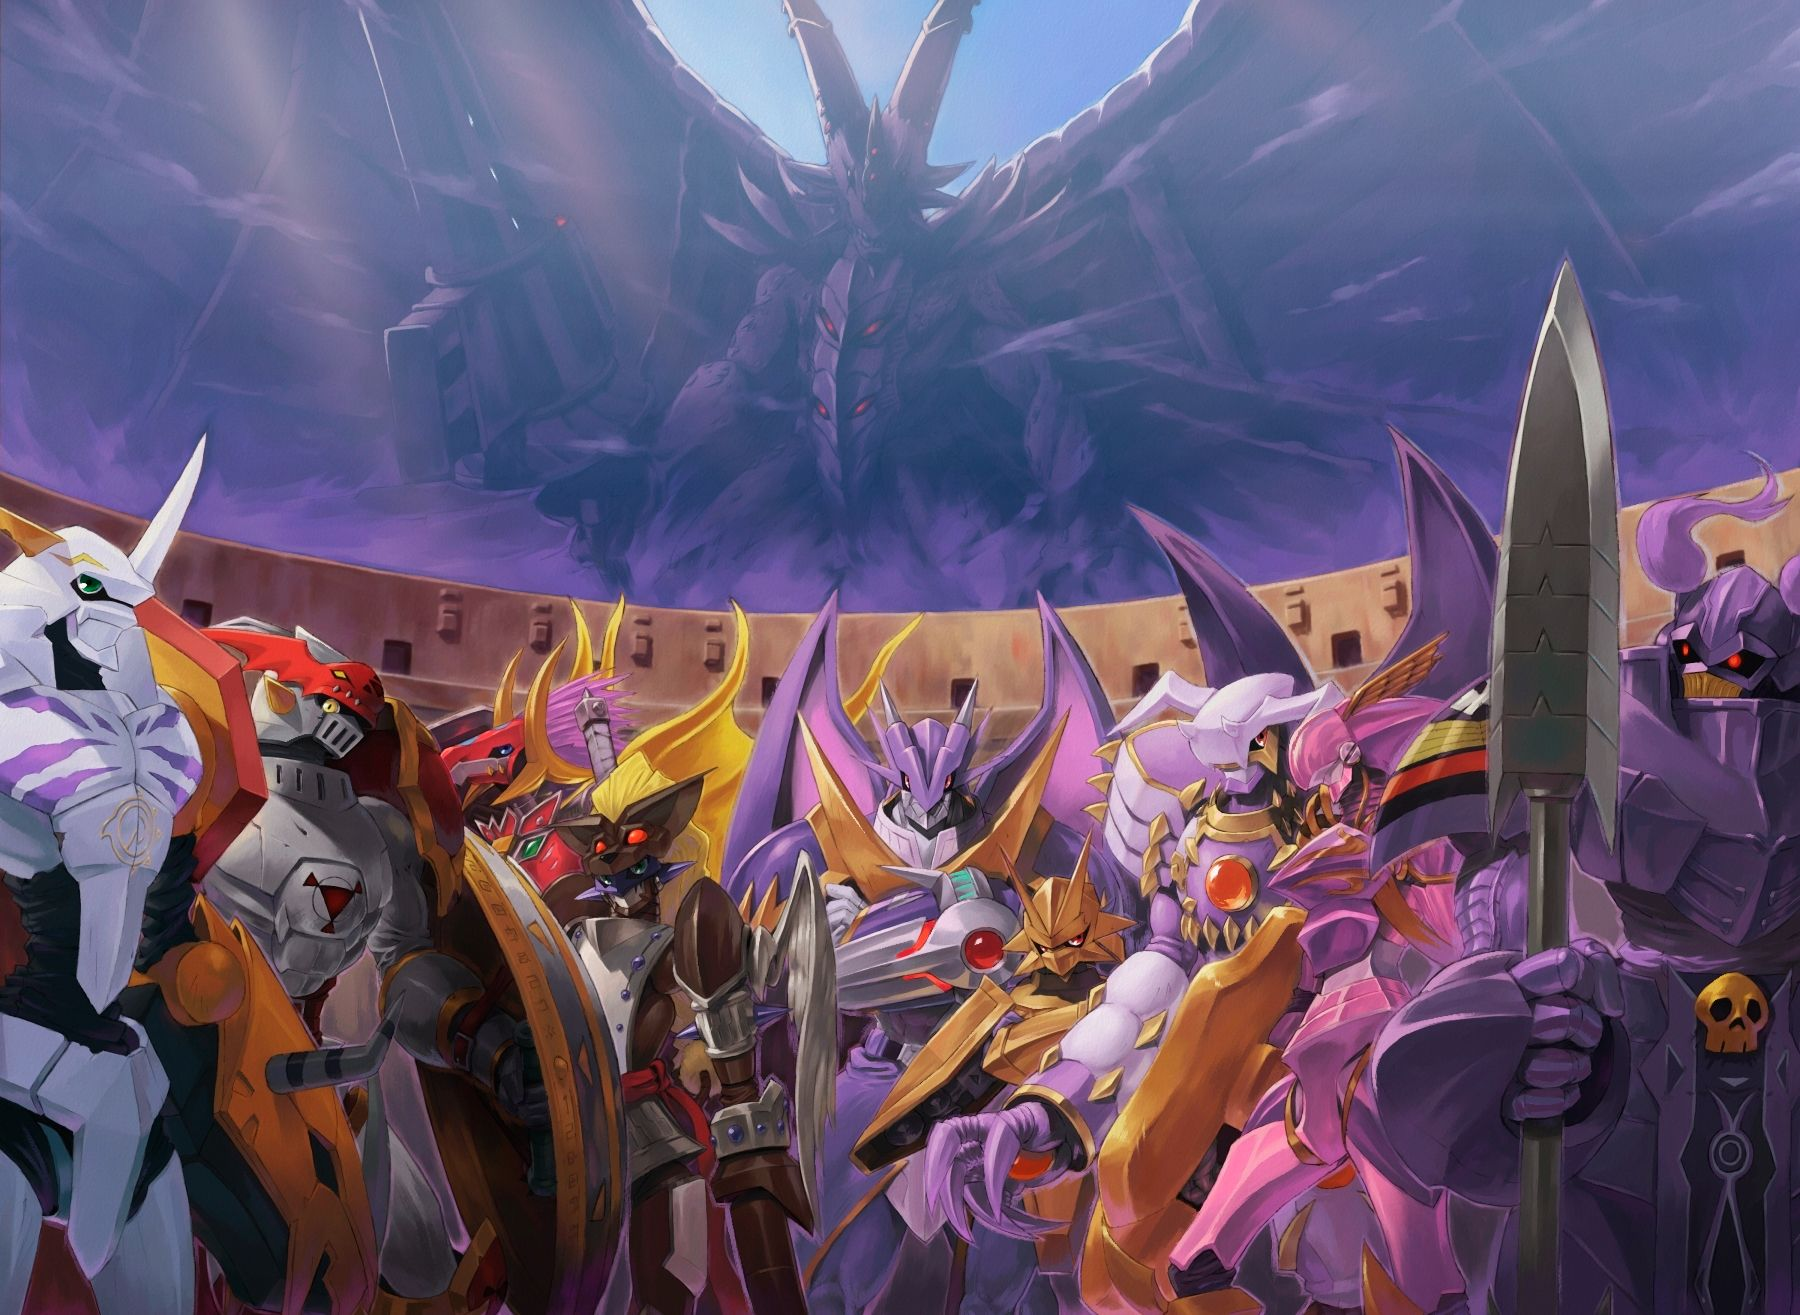 Pin On Digimon The royal knights are finally complete stronger then ever song by: pin on digimon